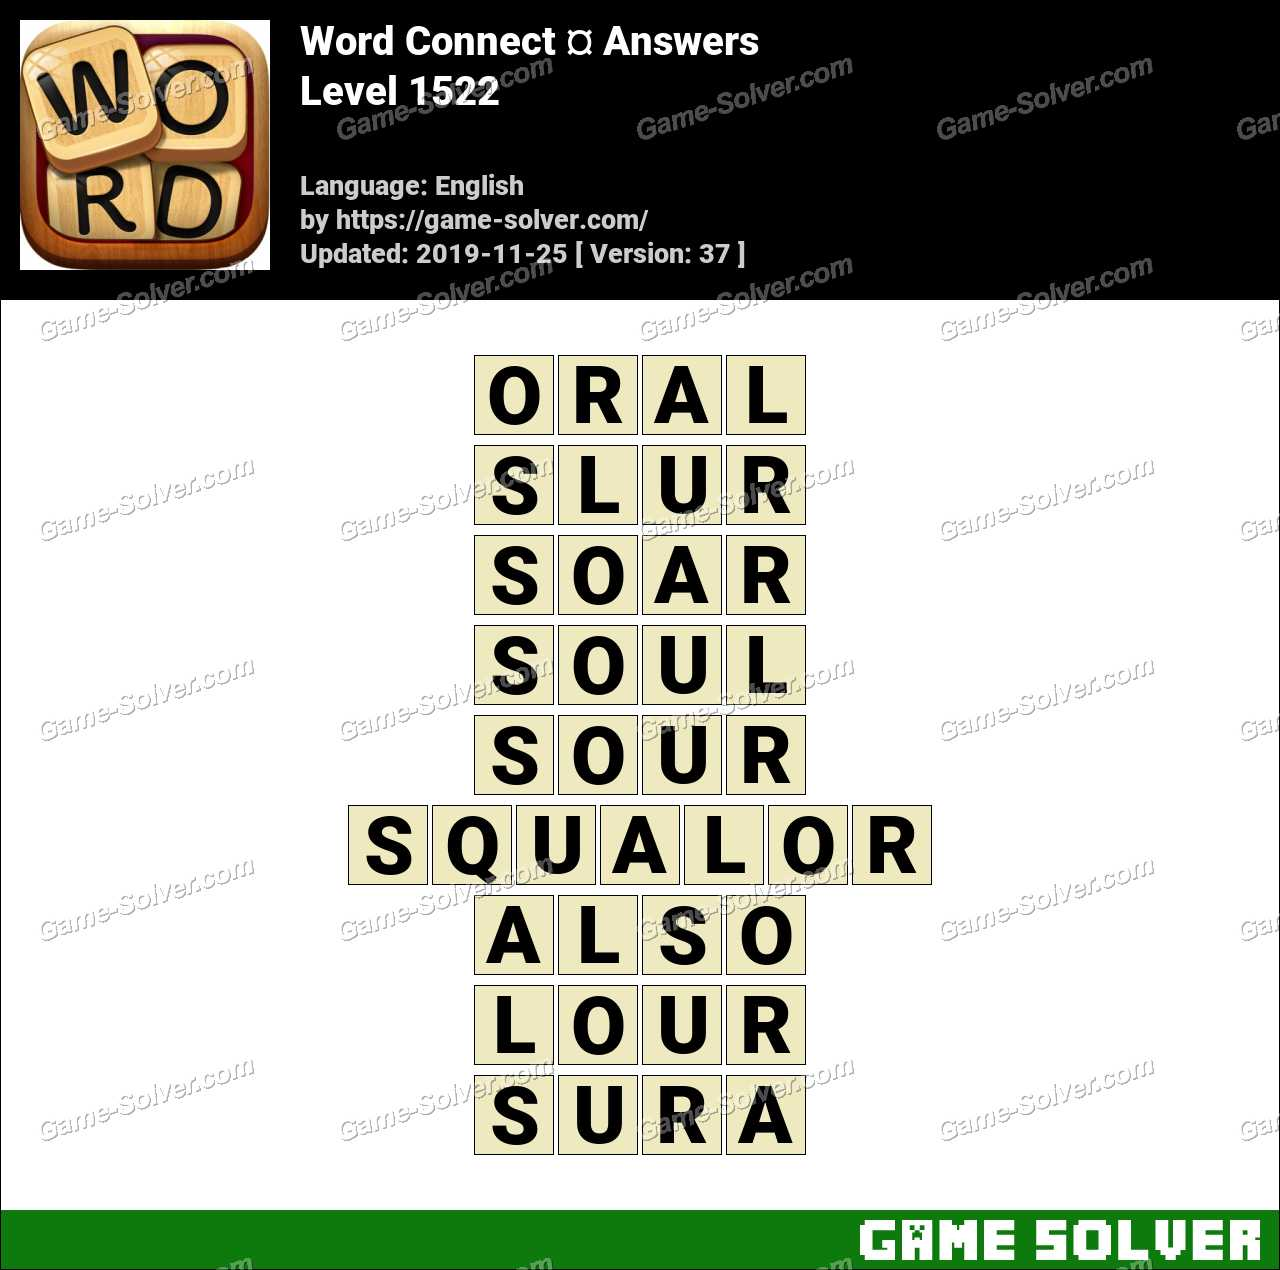 Word Connect Level 1522 Answers